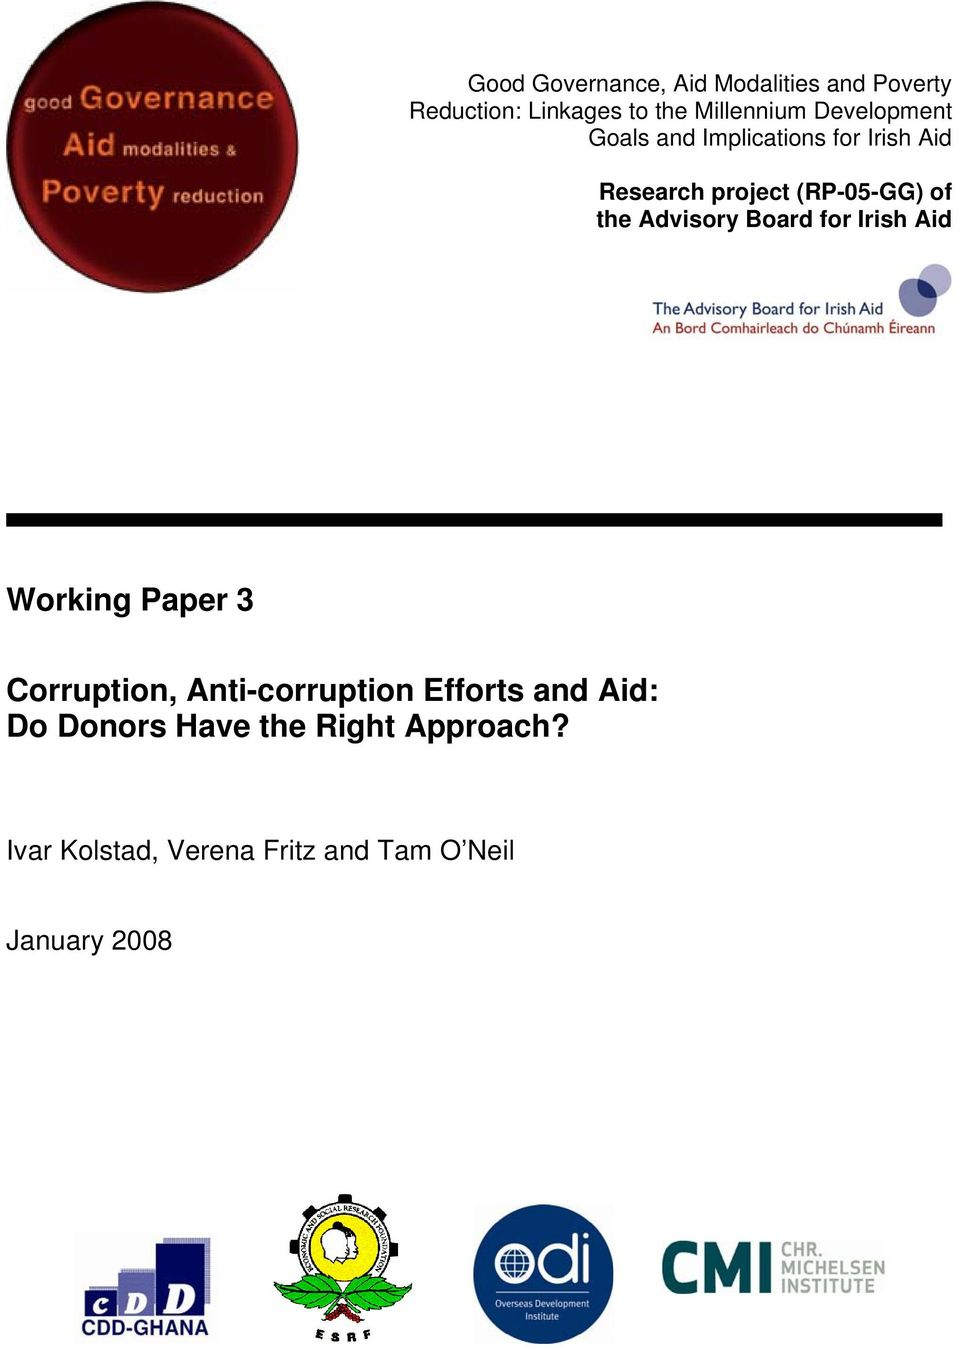 Advisory Board for Irish Aid Working Paper 3 Corruption, Anti-corruption Efforts and